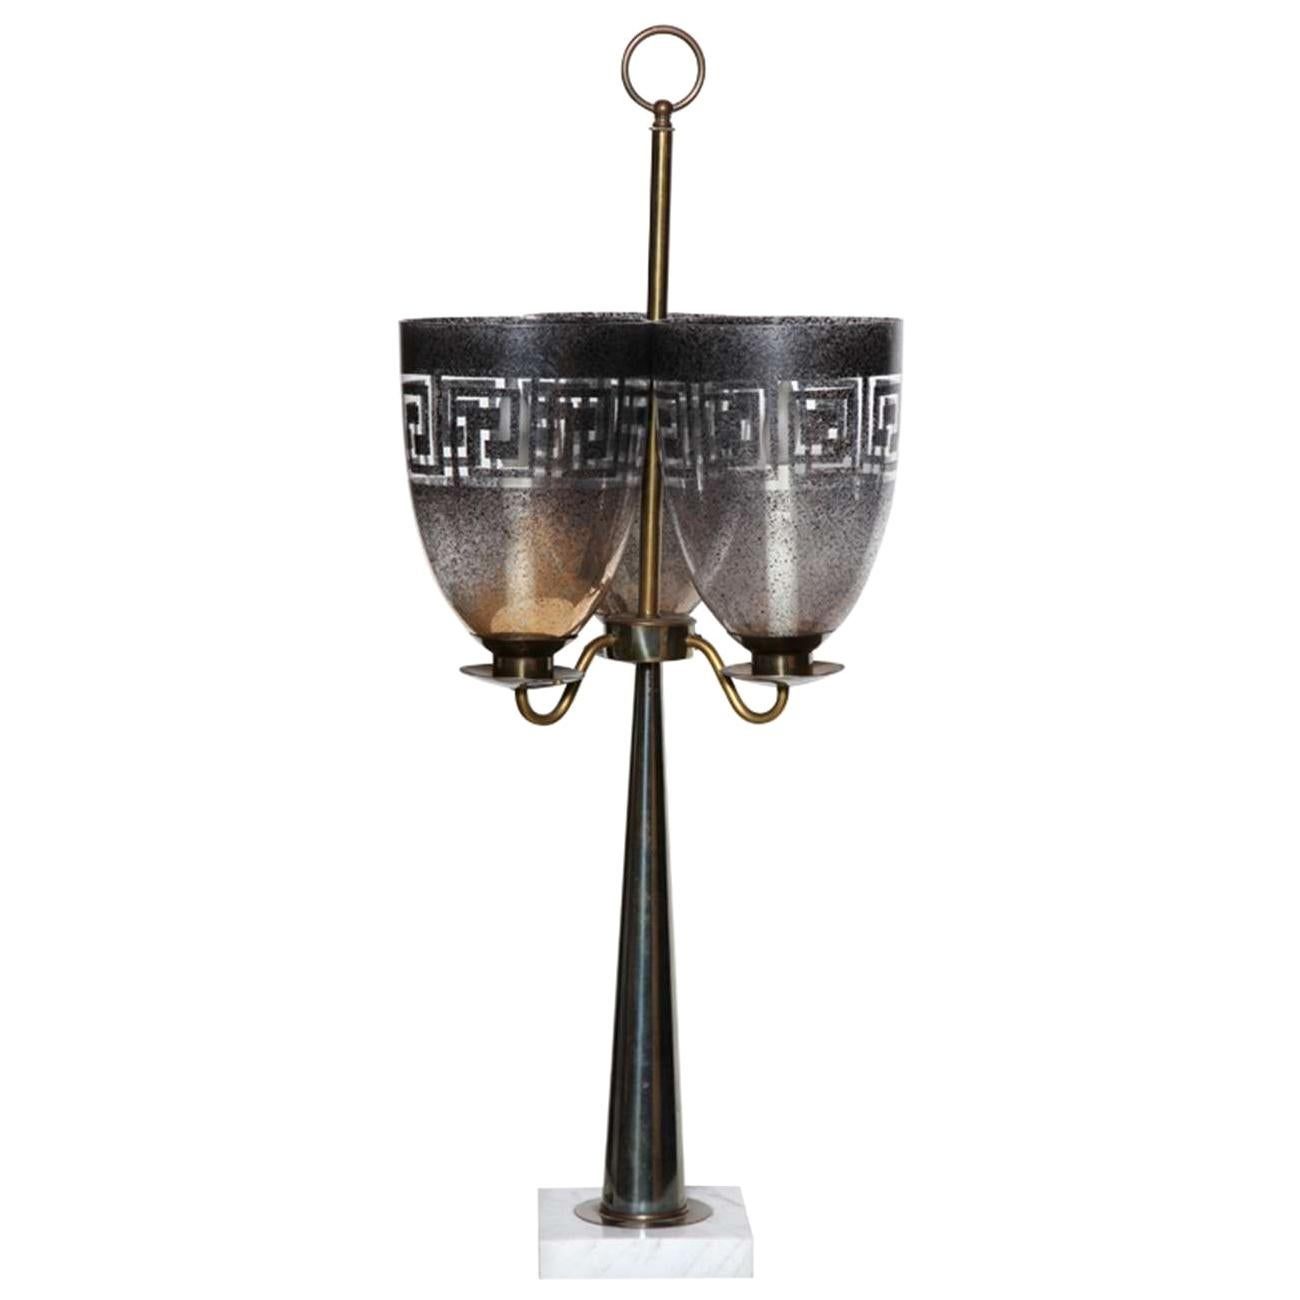 Stiffel Parzinger Style Triple Hurricane Shade Candlestick Table Lamp, 1950s